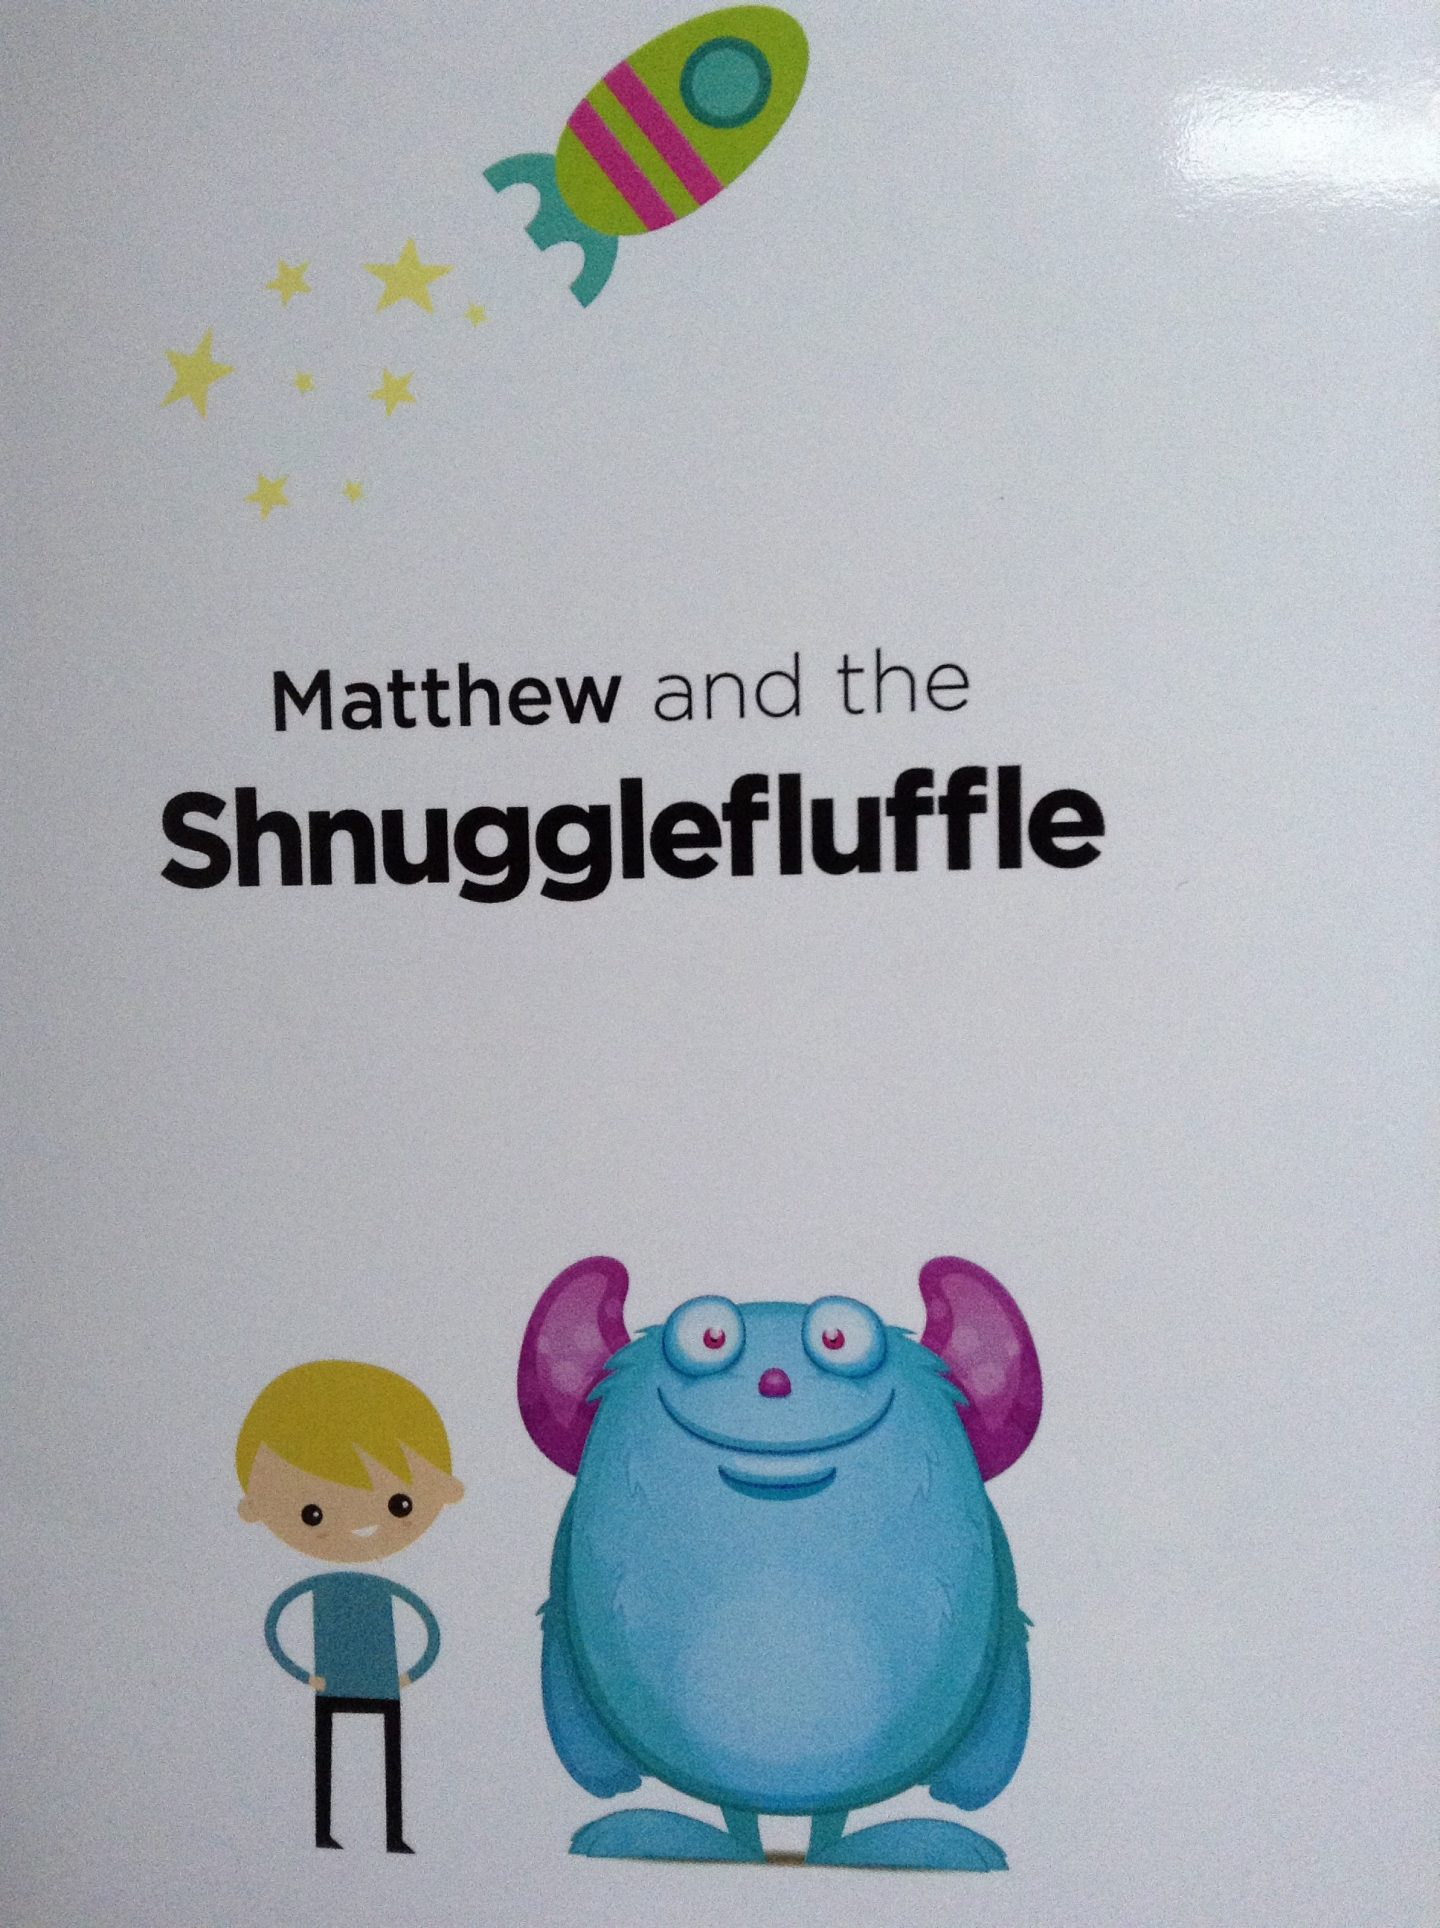 Matthew and the Shnugglefluffles book review